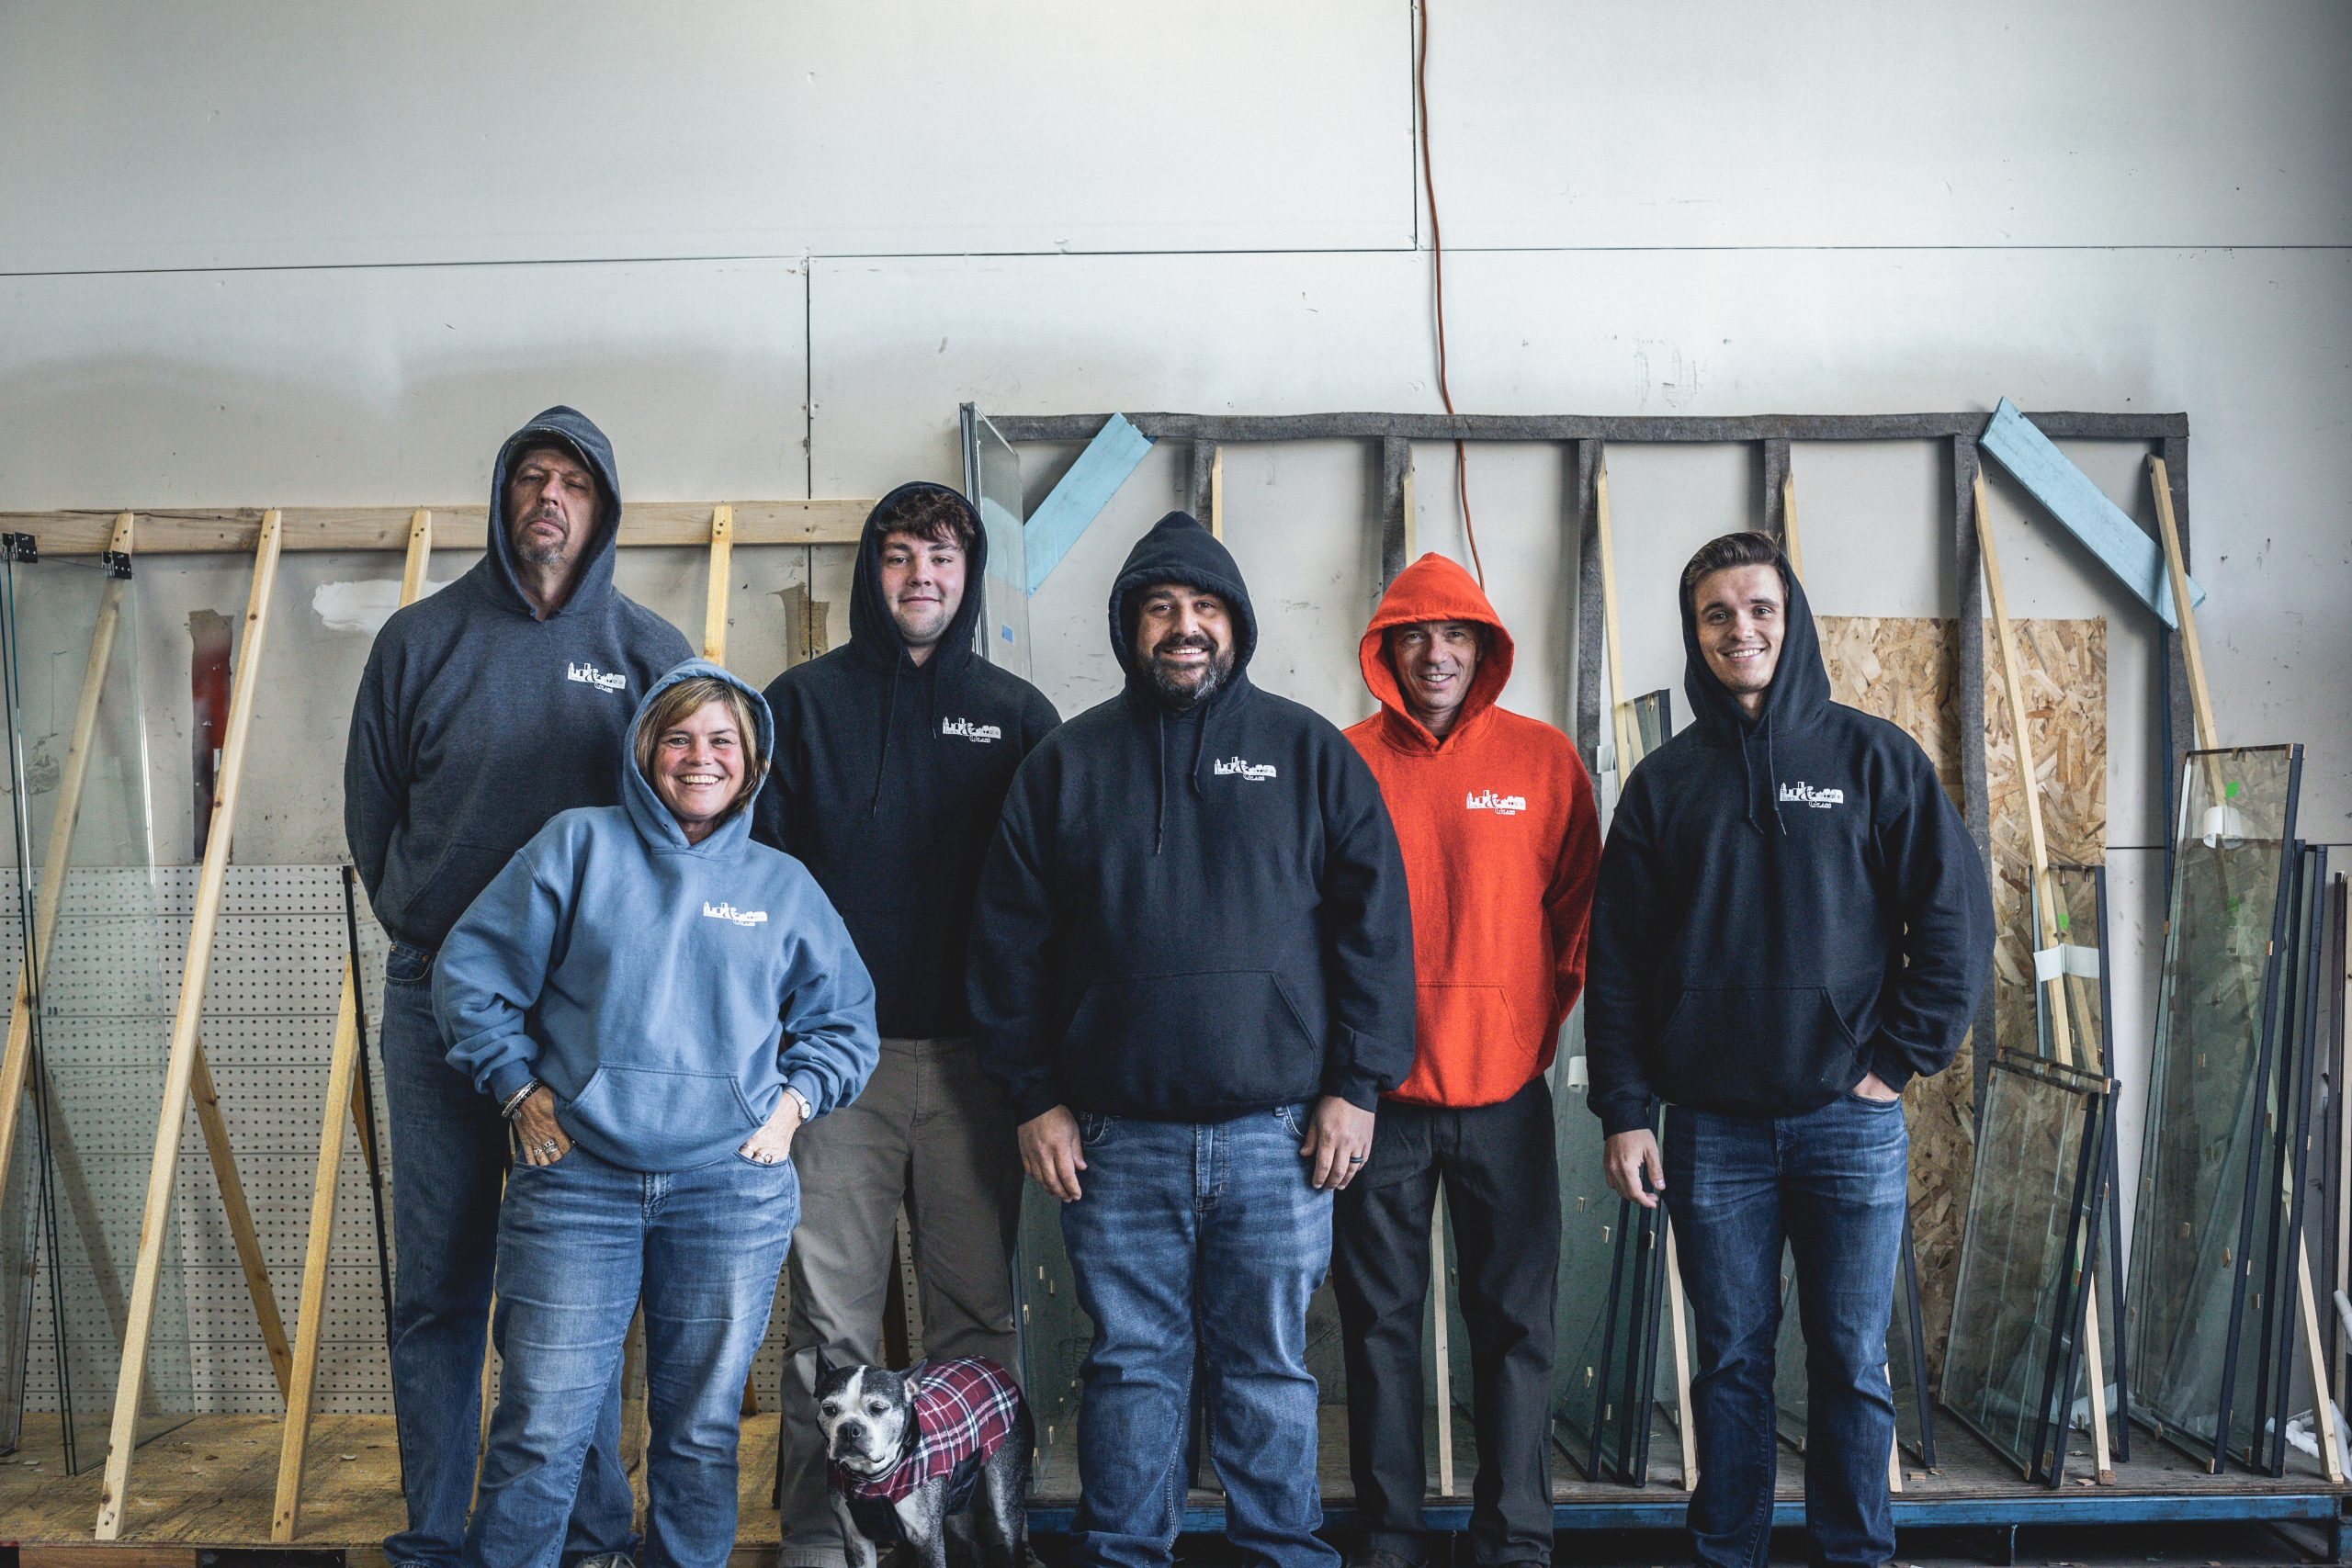 The Colton window repair crew at T&C Glass